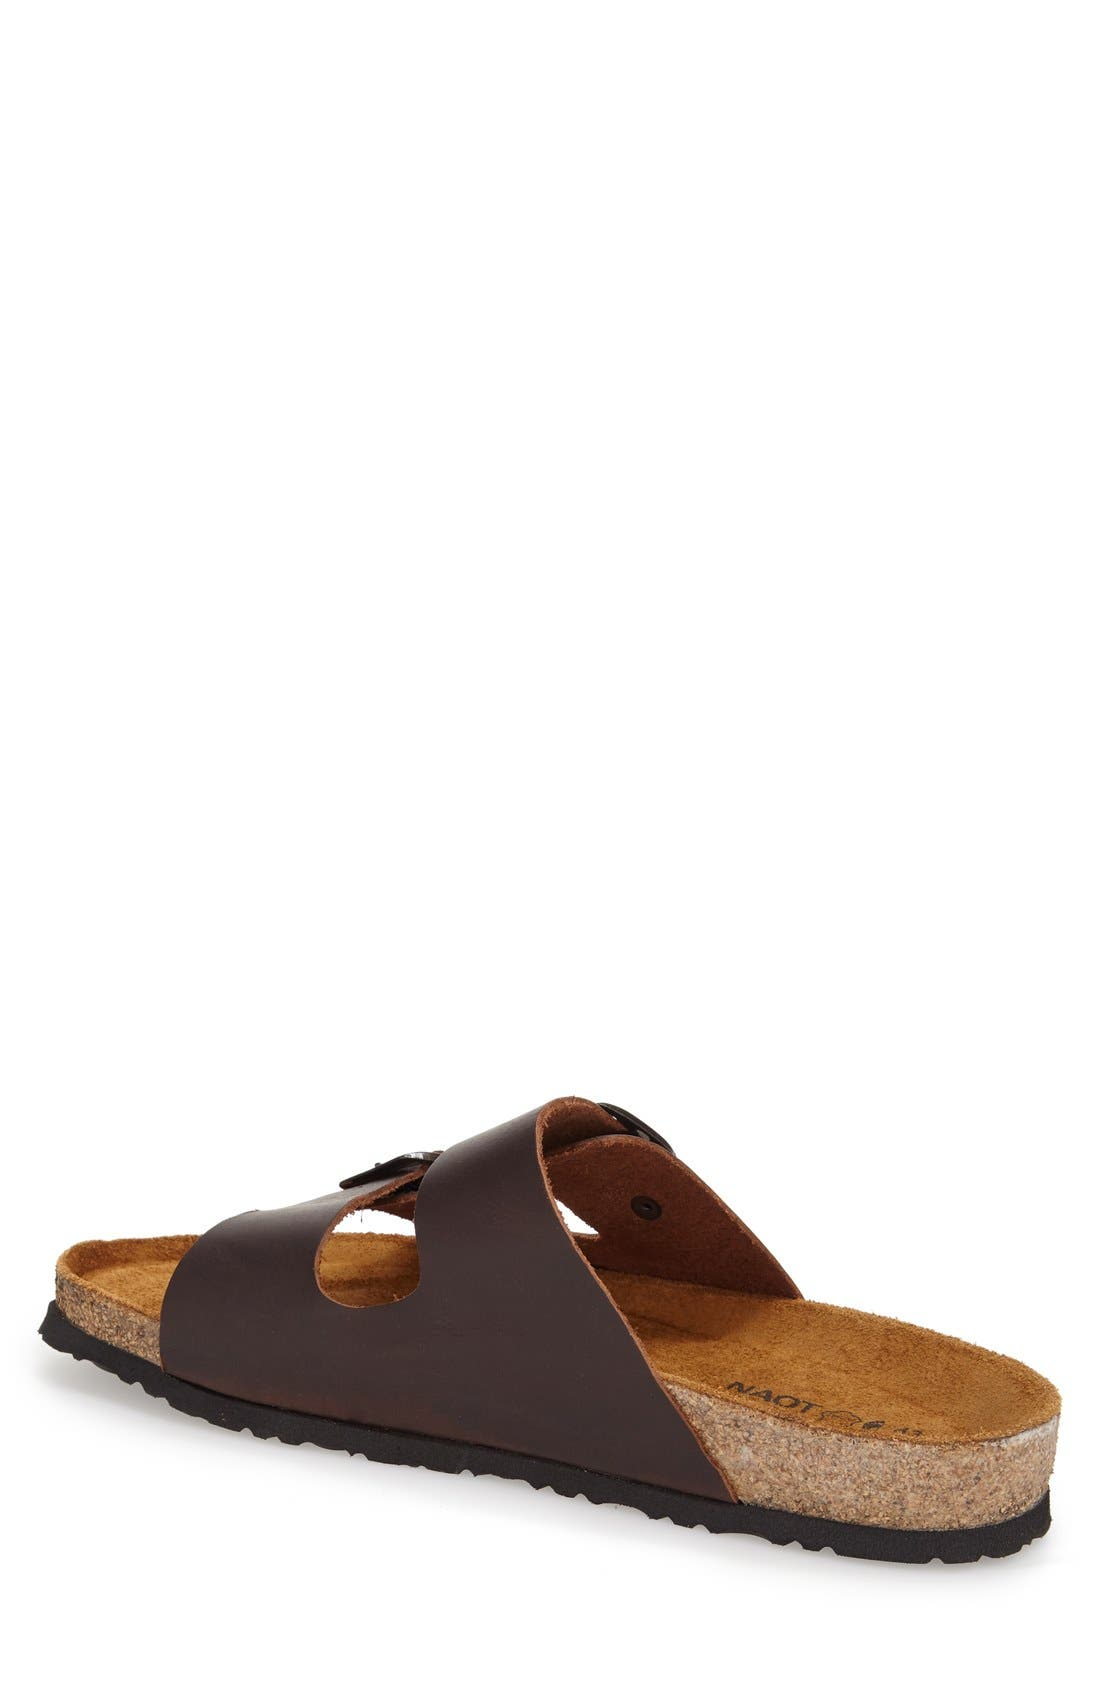 Santa Barbara Slide Sandal,                             Alternate thumbnail 2, color,                             BUFFALO LEATHER